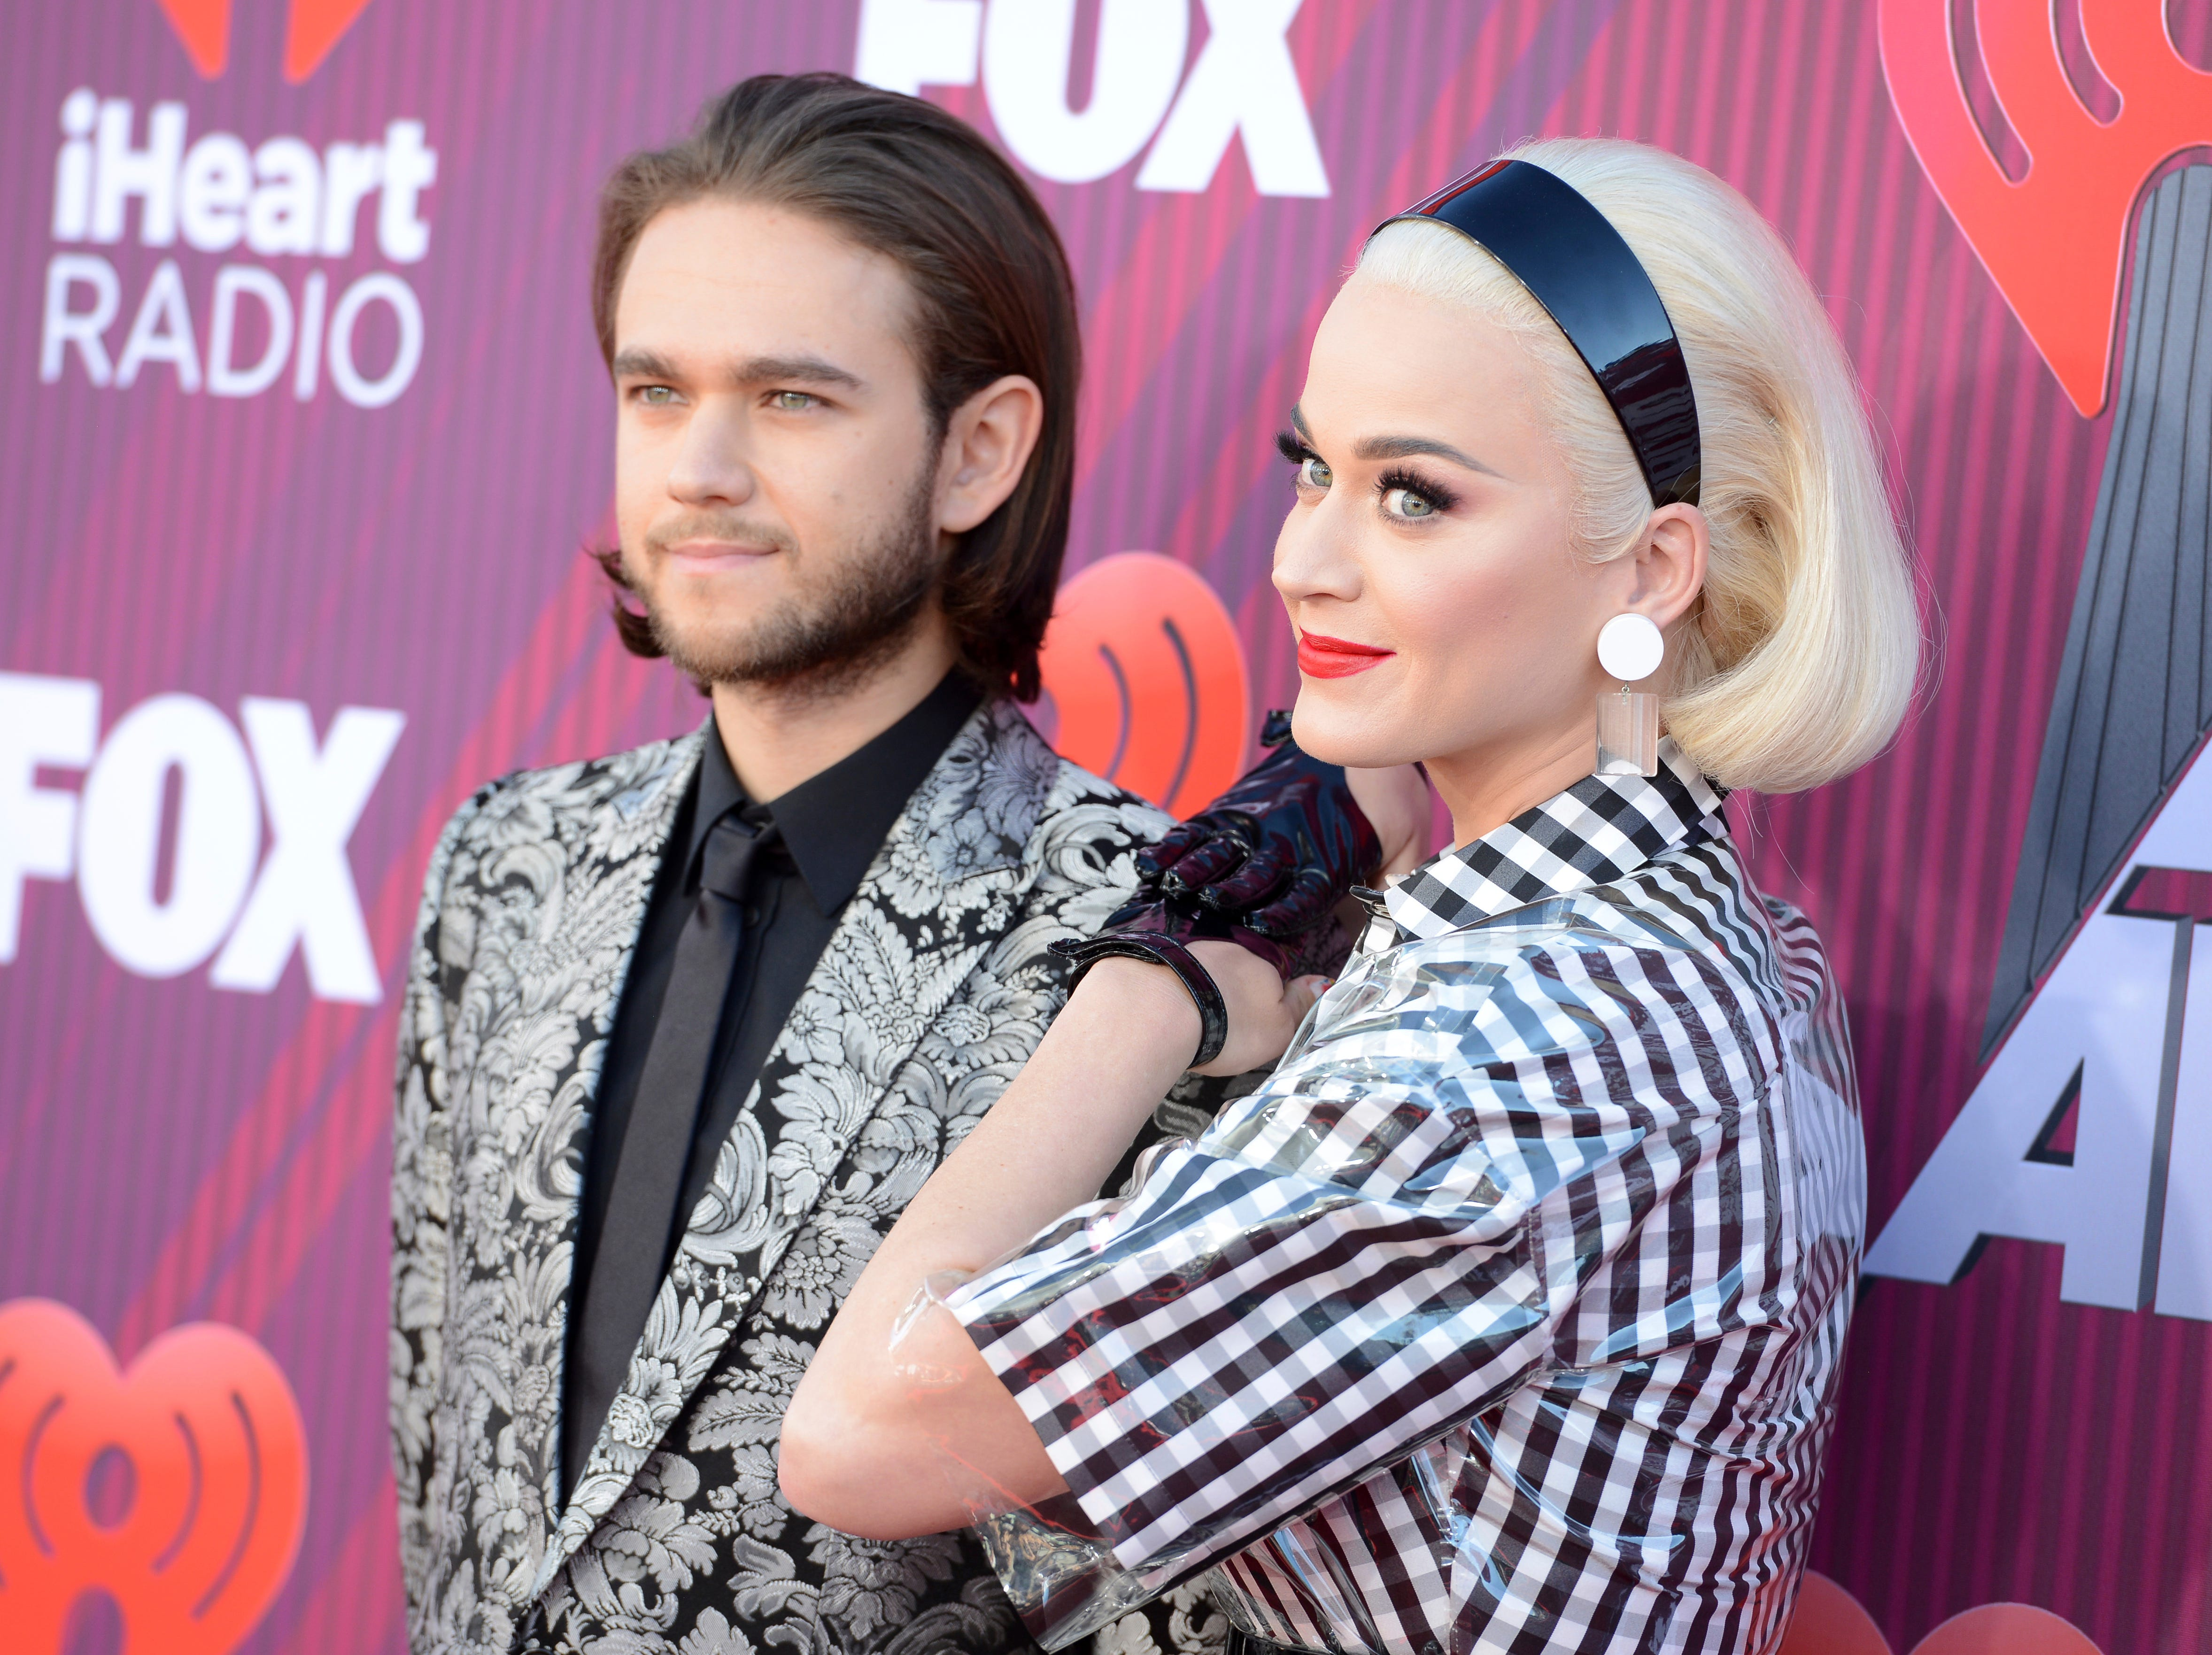 Zedd and Katy Perry arrive at the iHeartRadio Music Awards.